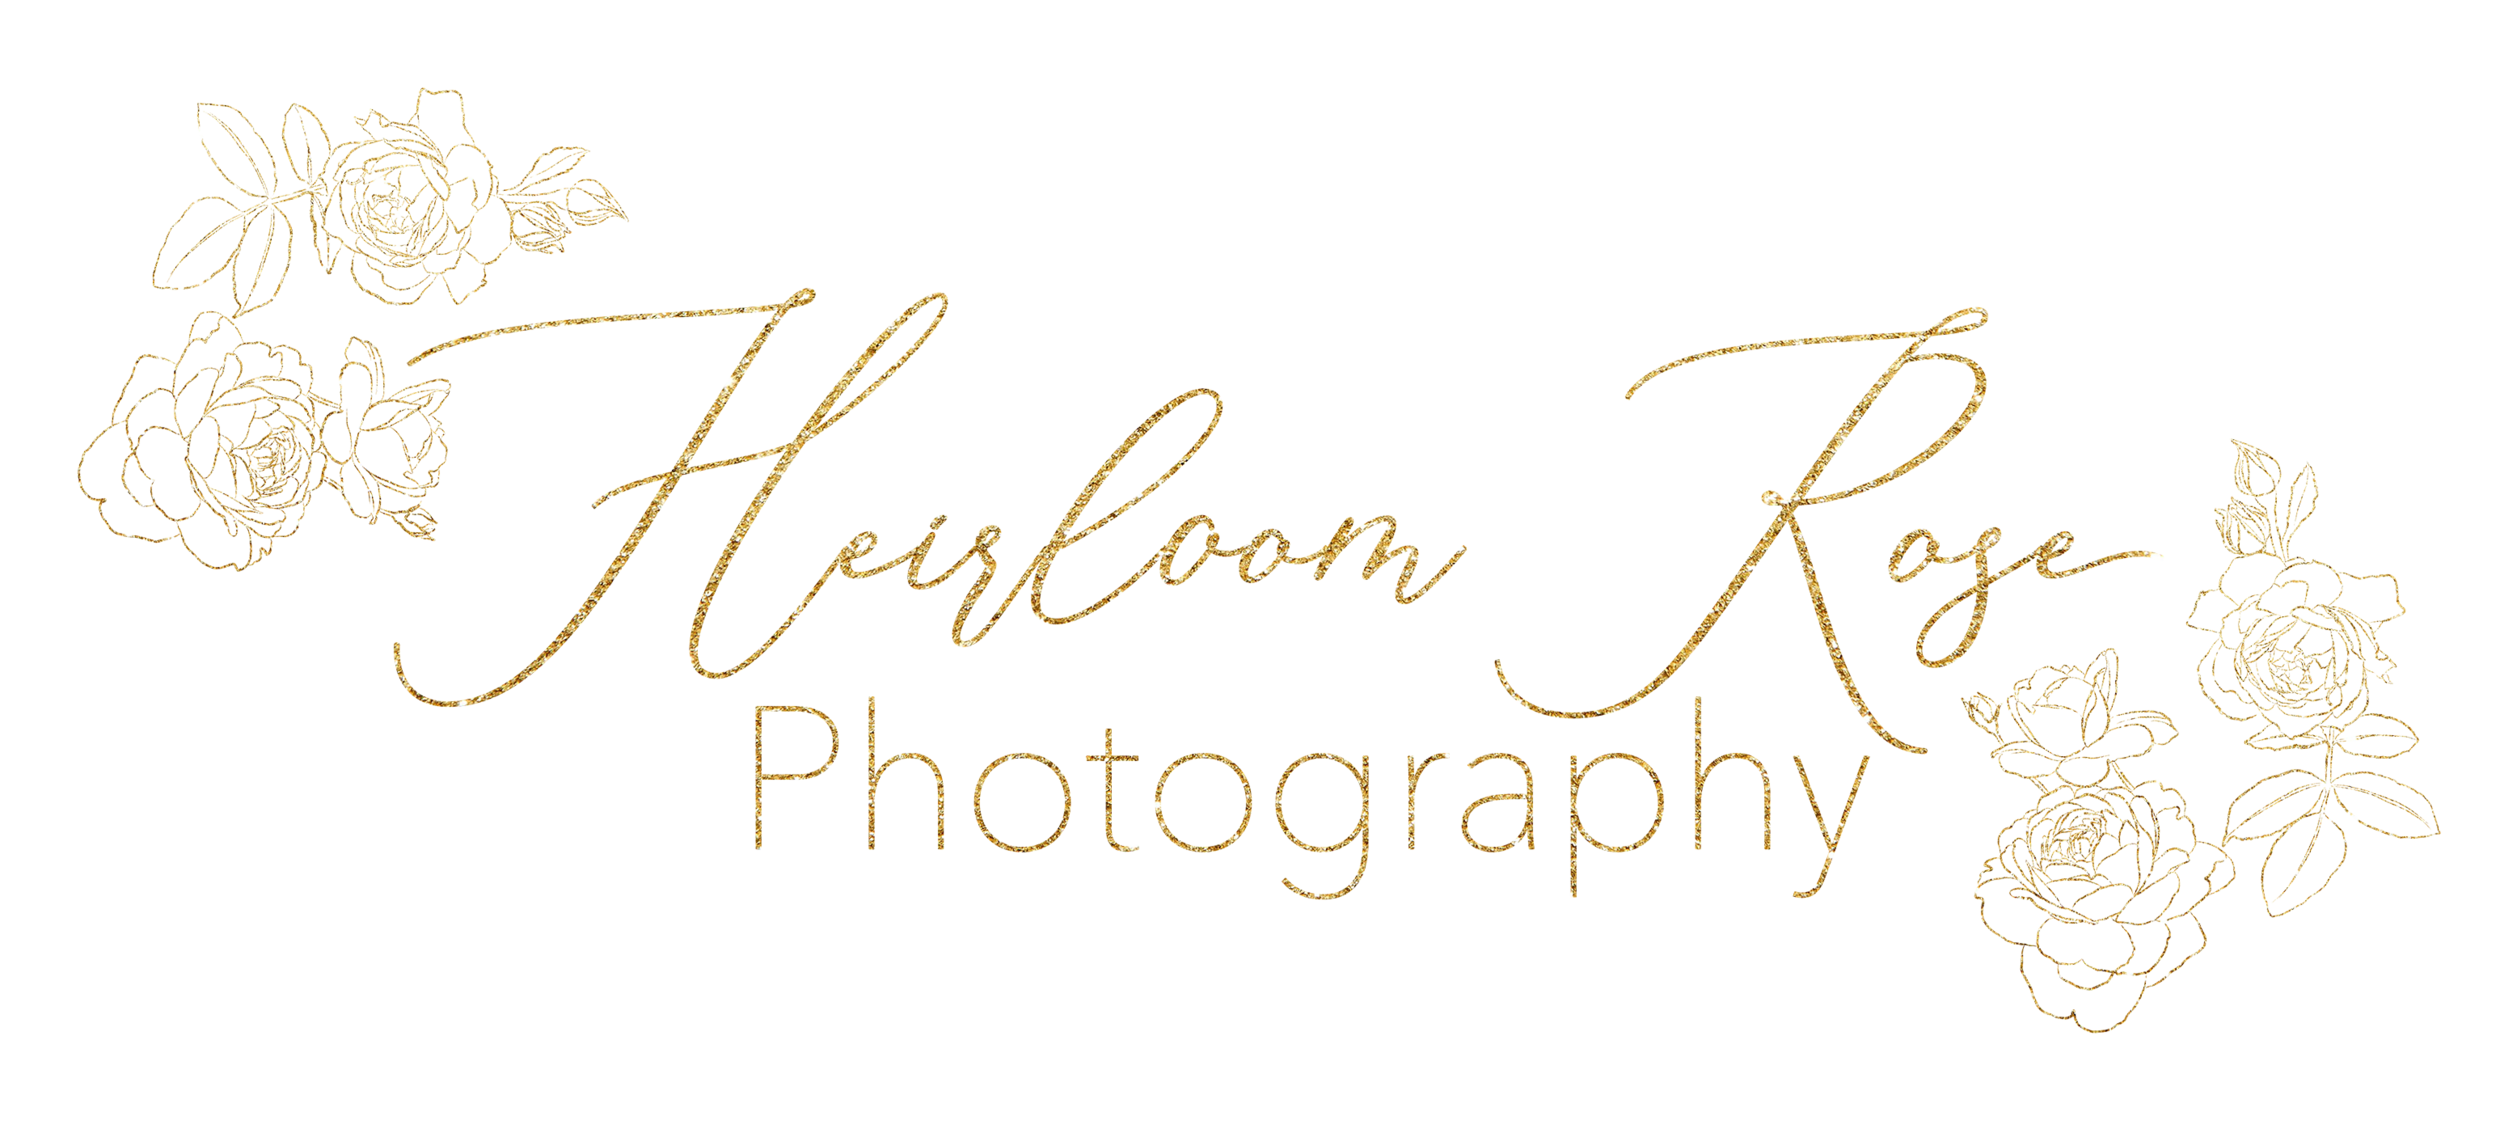 Wedding Photographer Dallas-Fort Worth Heirloom Rose Photography